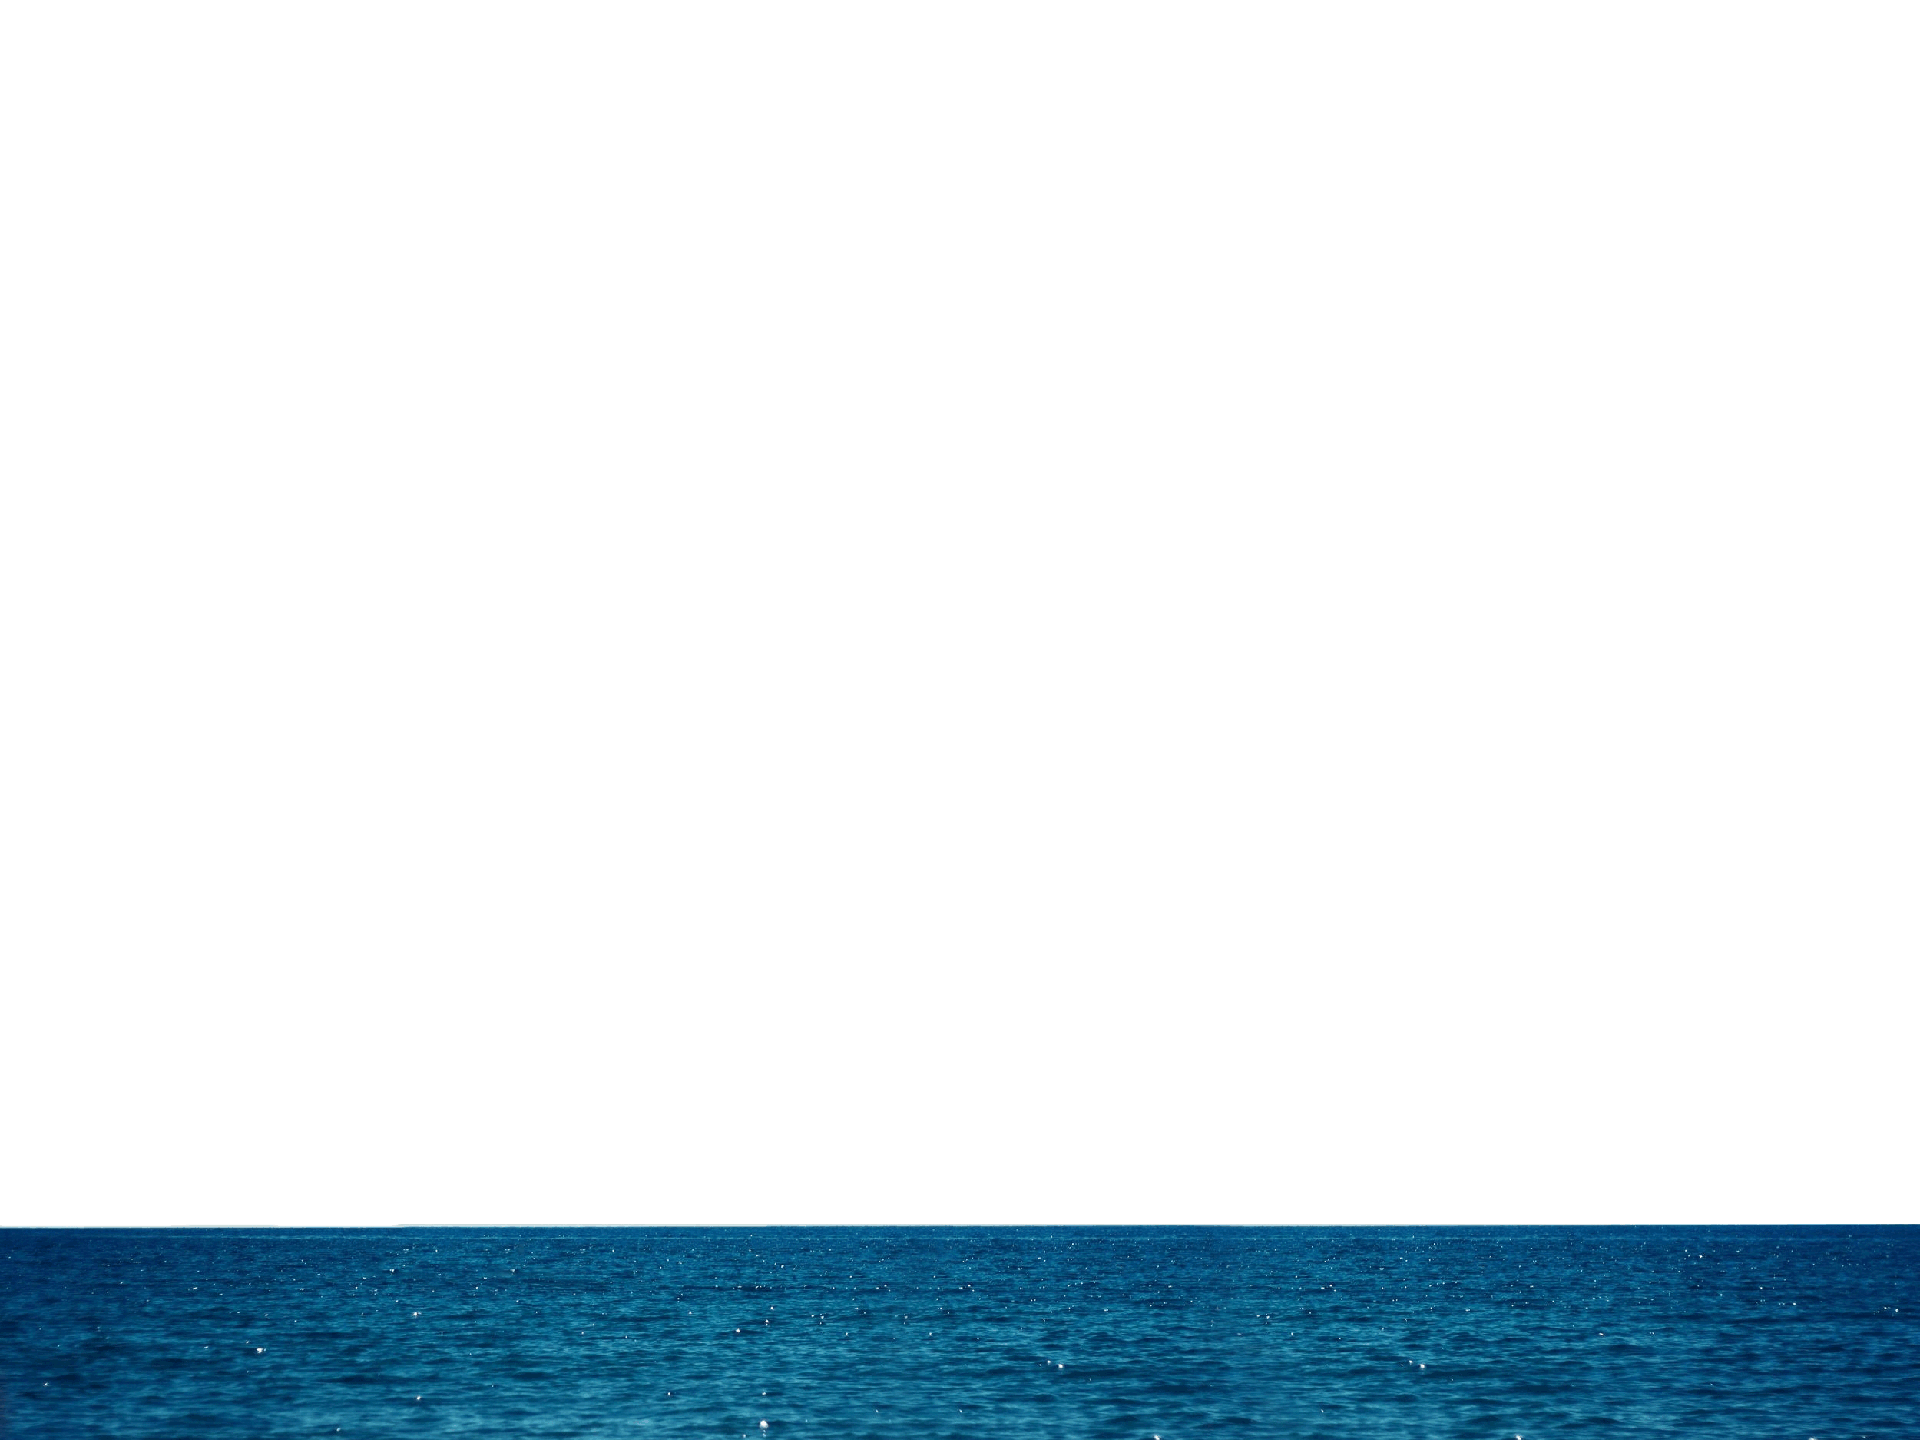 Ocean Png / All png & cliparts images on nicepng are best quality.